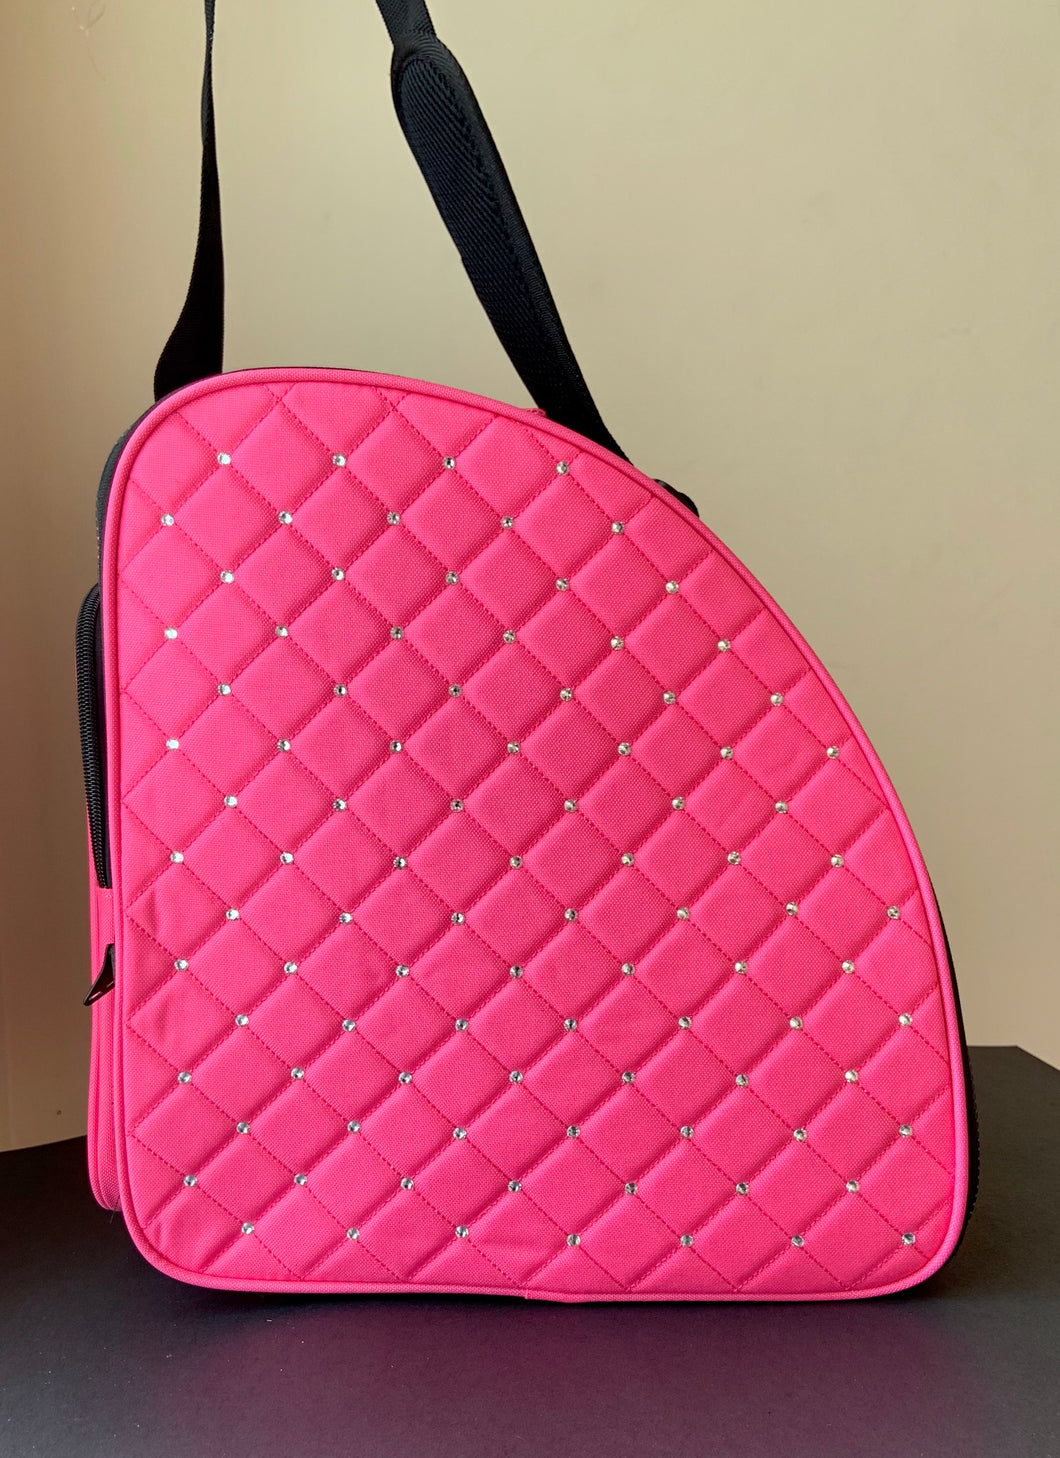 CUBE Shoulder Bag Pink with crystals.